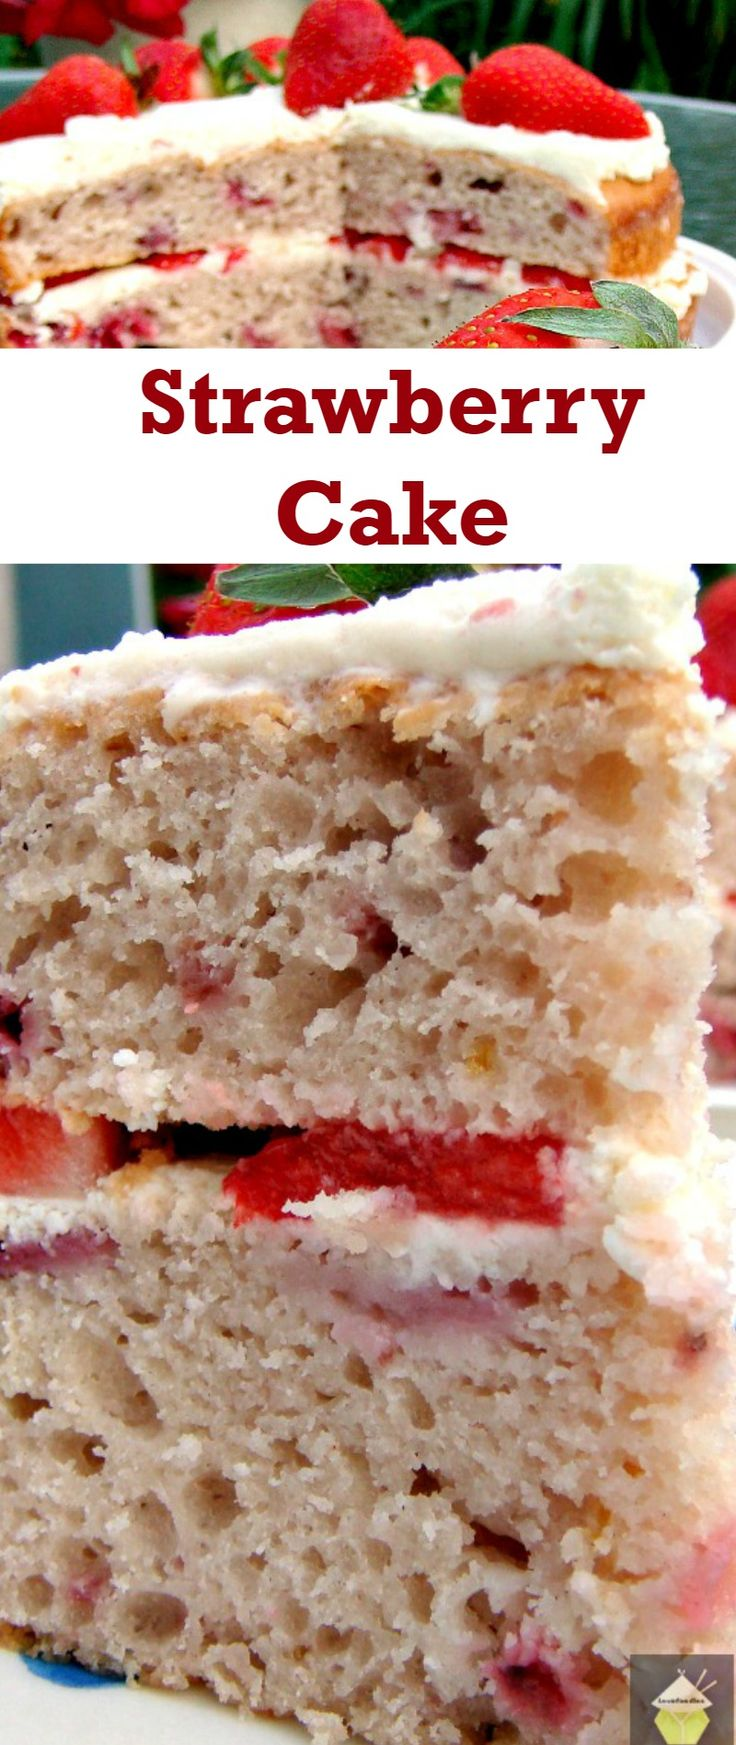 Strawberry Yogurt Cake - This cake is light, fluffy and BURSTING with strawberry flavor! Made from scratch and using fresh ingredients. Easy recipe too. Yummy! | Lovefoodies.com